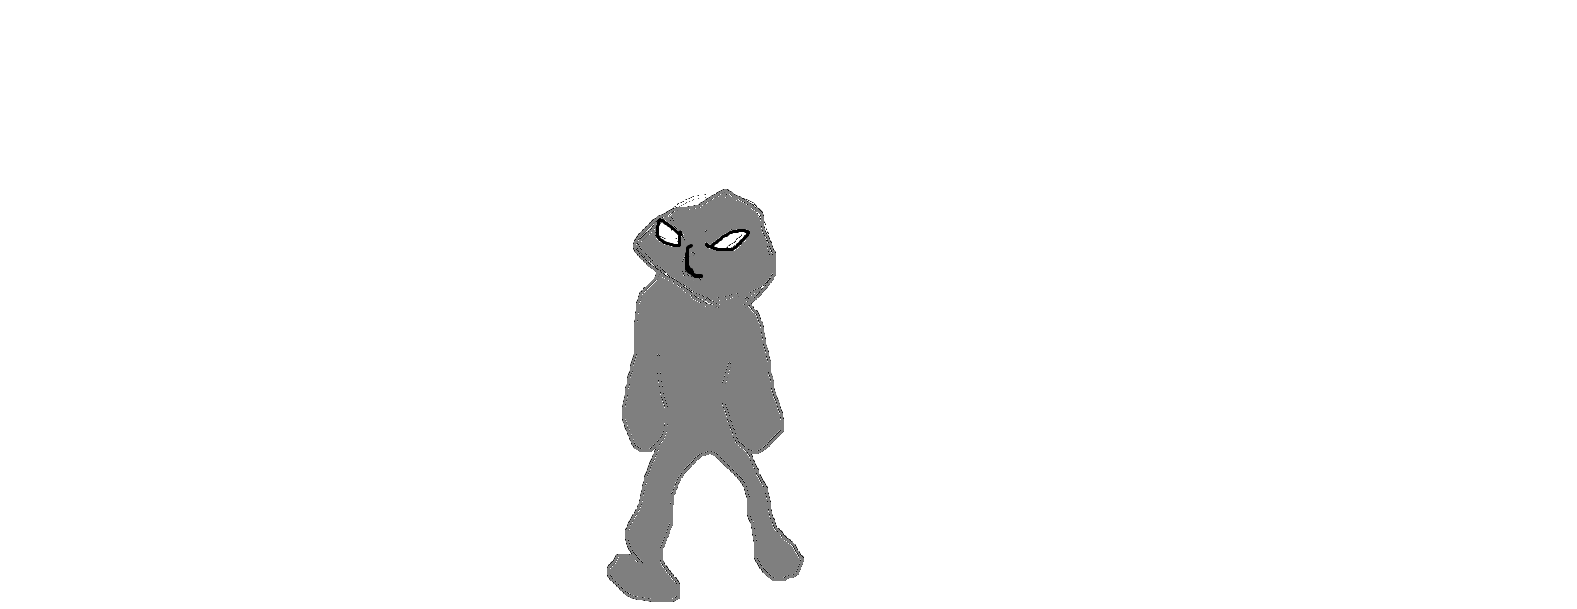 My mascot drawn in MS Paint